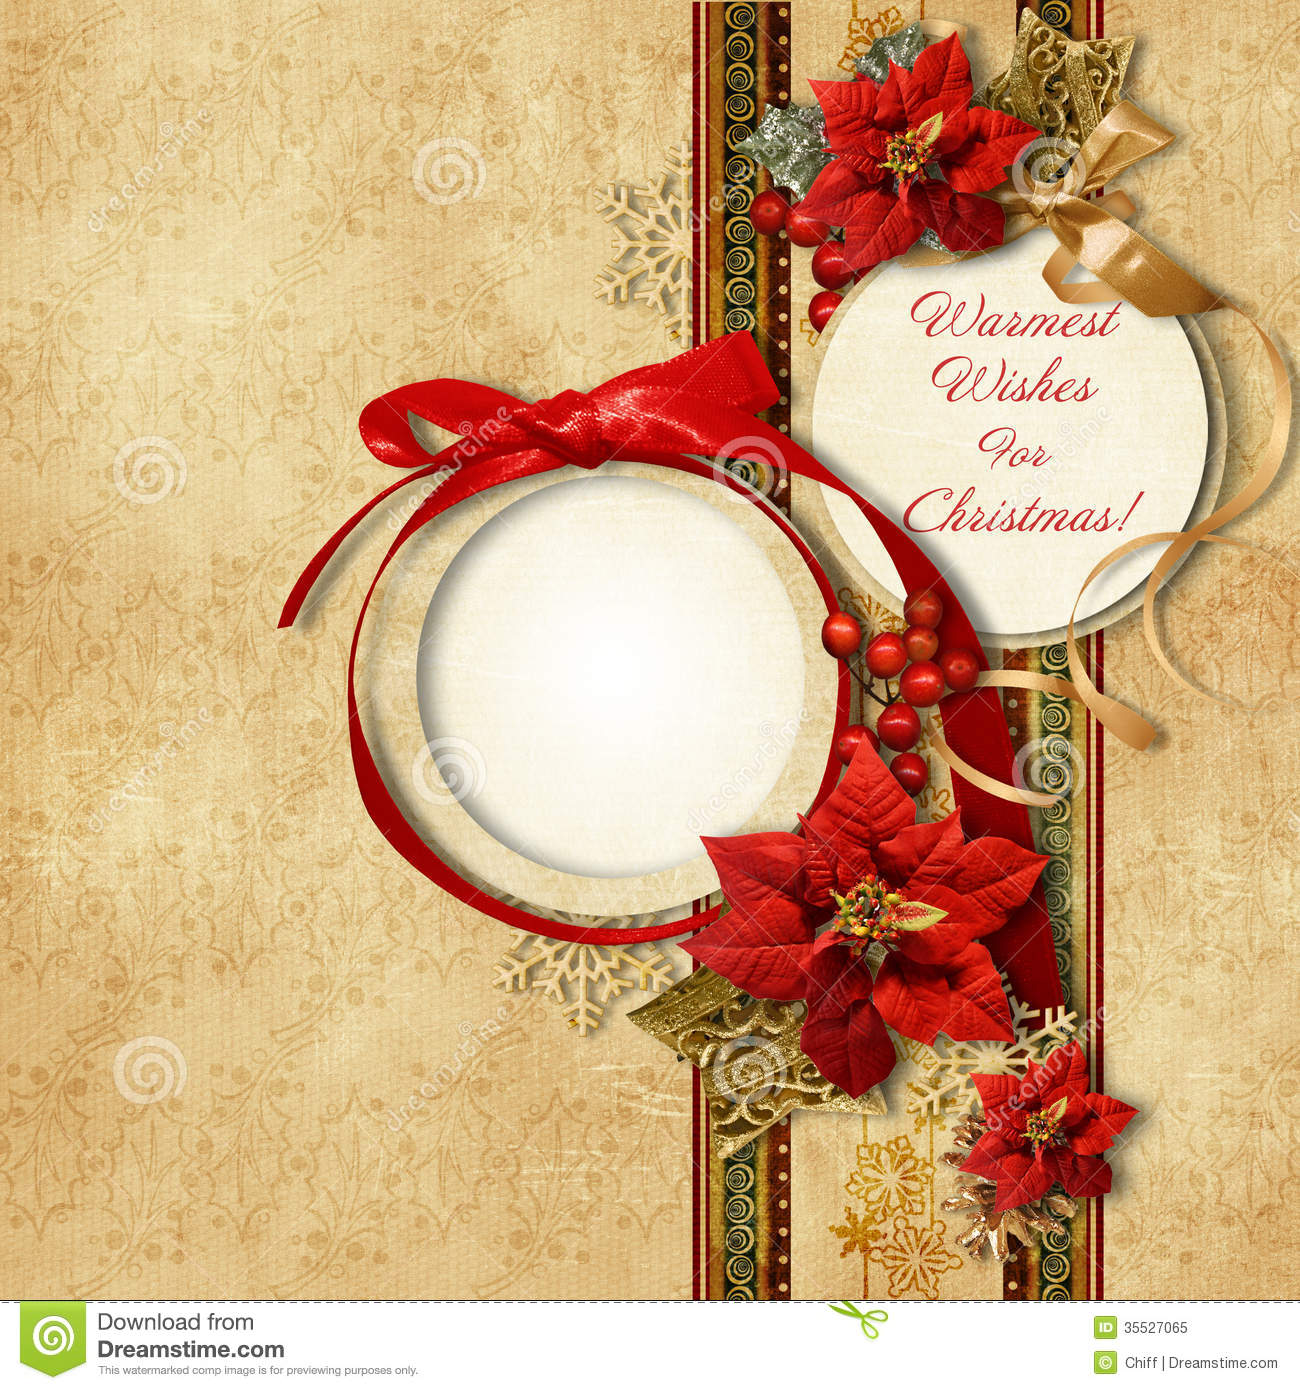 Merry Christmas Vintage Card With Frameamppoinsettia Stock